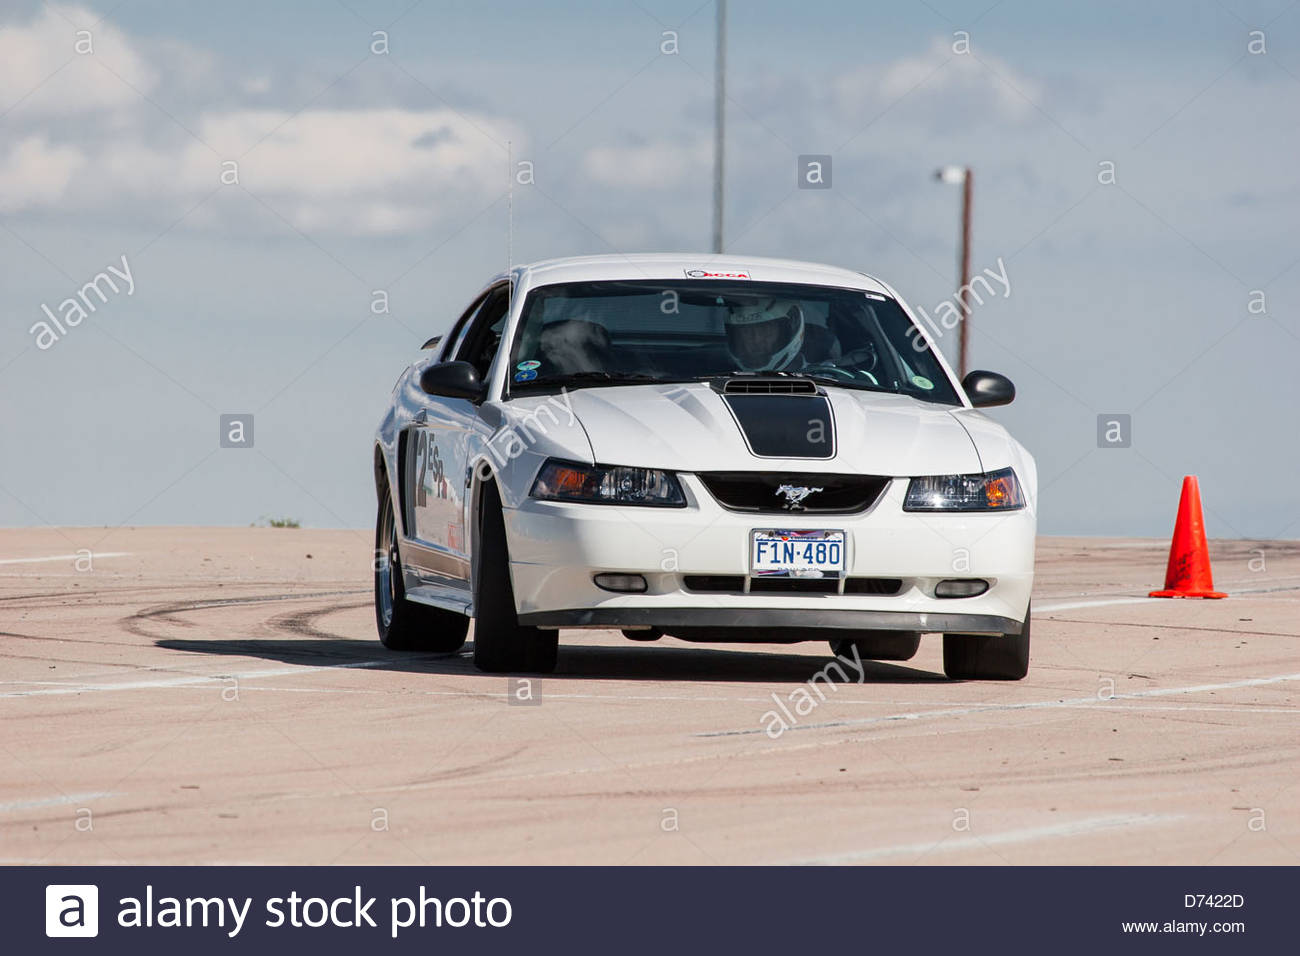 2004 white mustang | Oxford White / Dark Charcoal 2004 Ford ...